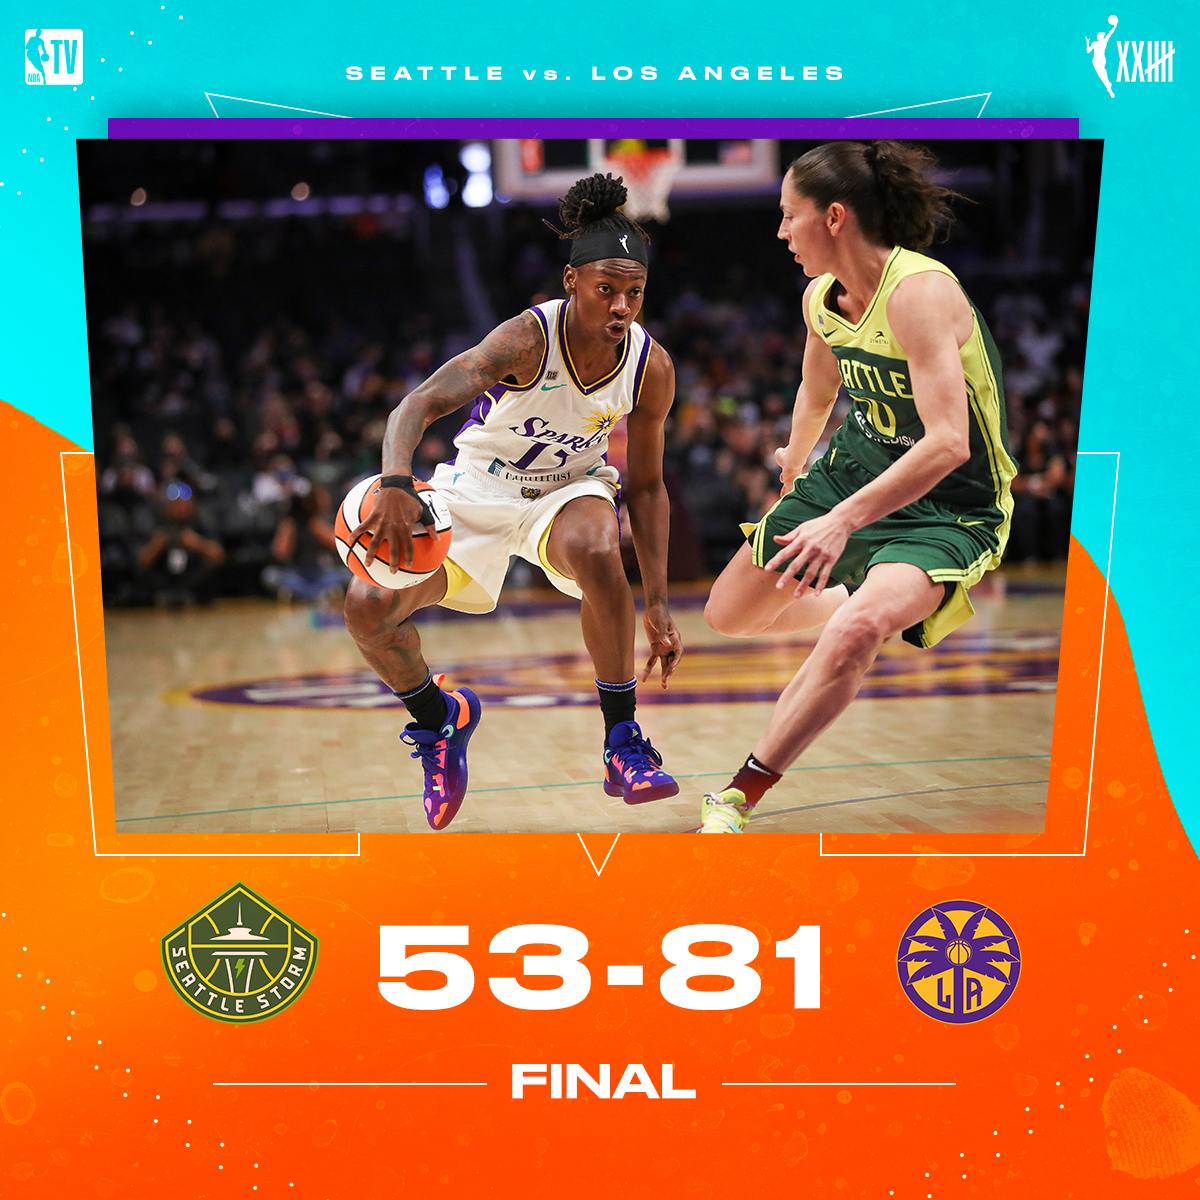 .@LASparks cruise to a win in their final home game of the season 🔥